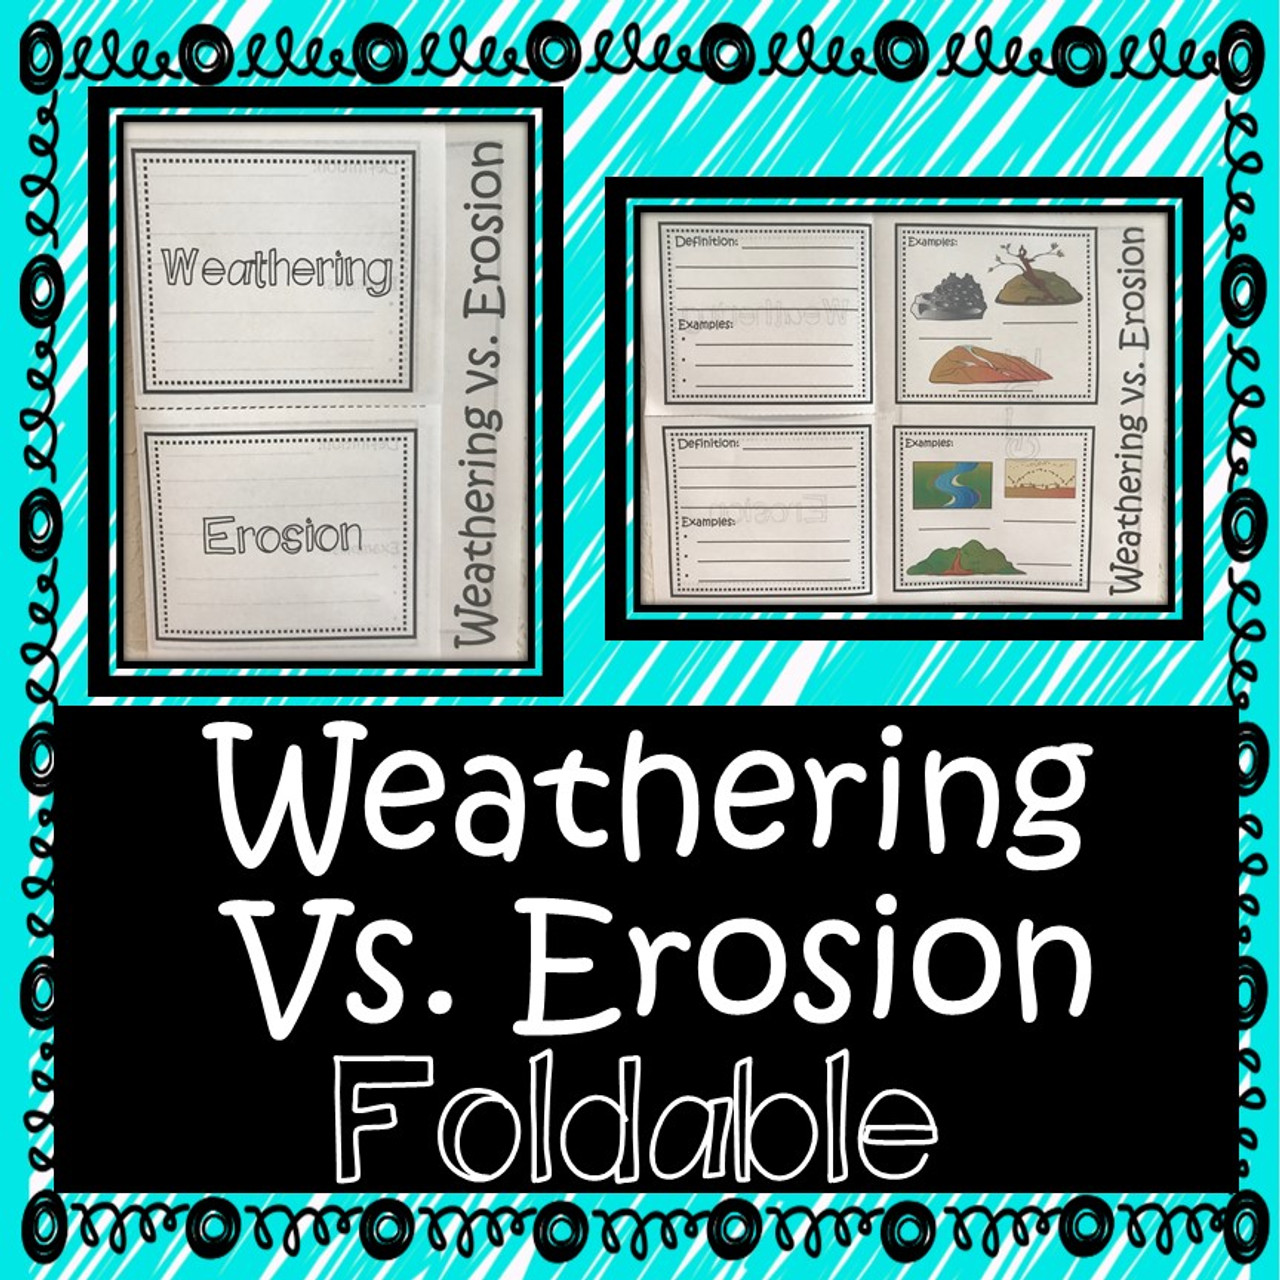 Weathering and Erosion Foldable - Amped Up Learning [ 1280 x 1280 Pixel ]